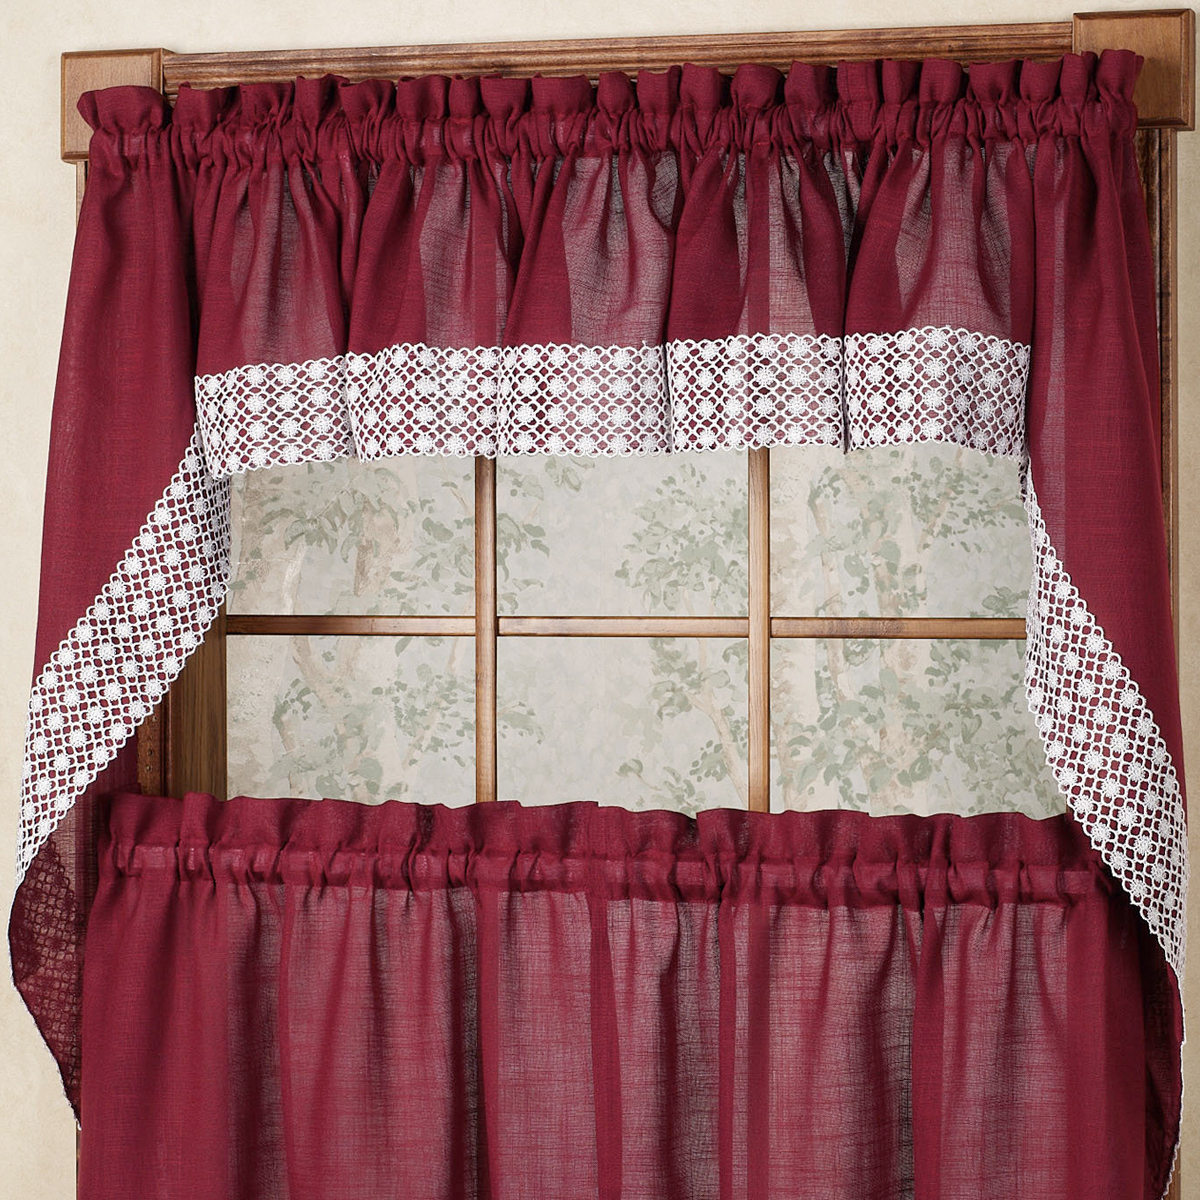 "Well Liked French Vanilla Country Style Curtain Parts With White Daisy Lace Accent Inside Salem Kitchen Window Curtain W/ Lace Trim – 38"" Swag Pair Burgundy (View 14 of 20)"